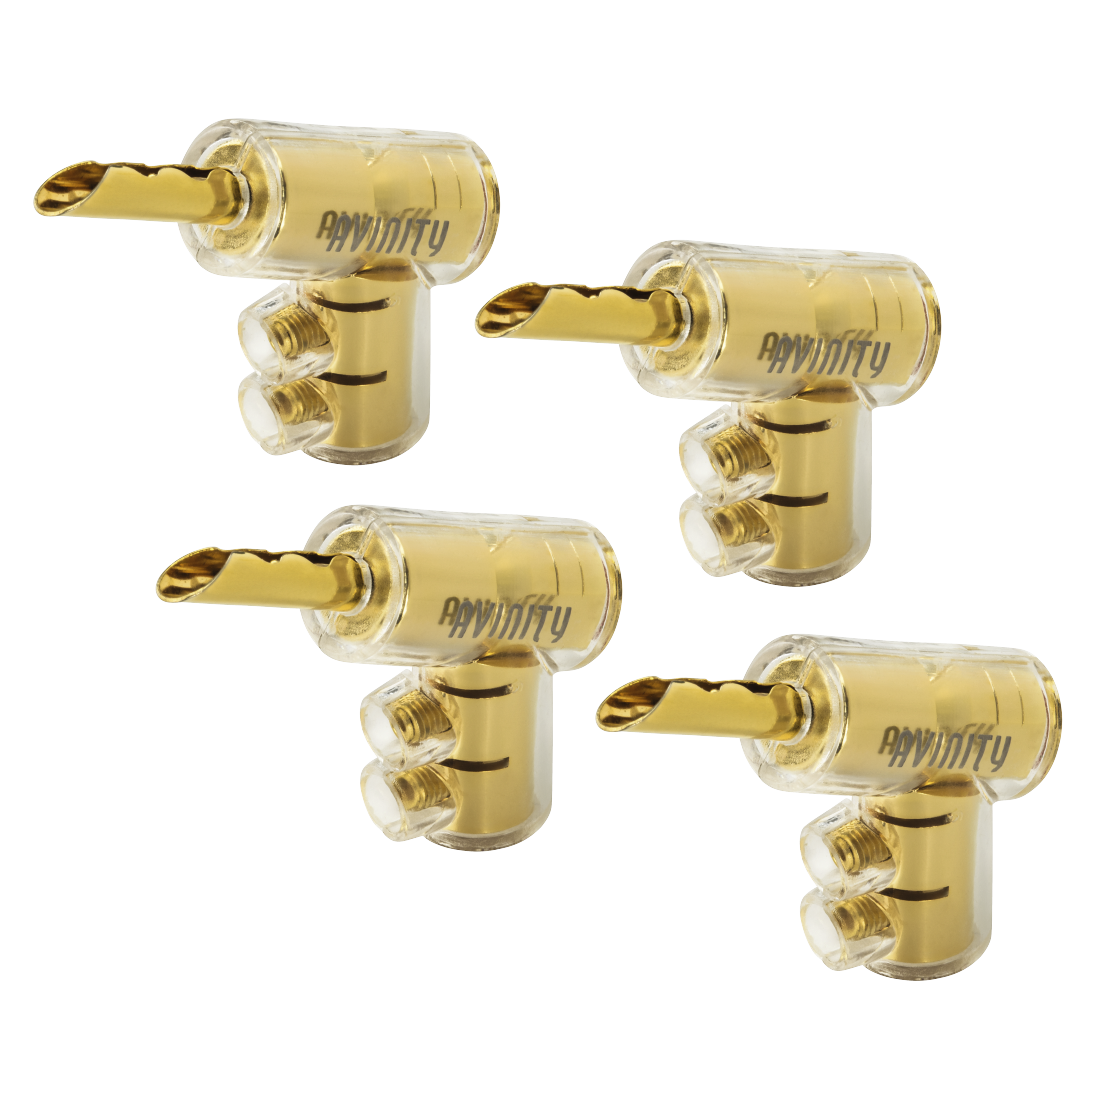 "abx High-Res Image - Avinity, ""BC-116"" Banana Plug, gold-plated, set of 4 with Allen Key"